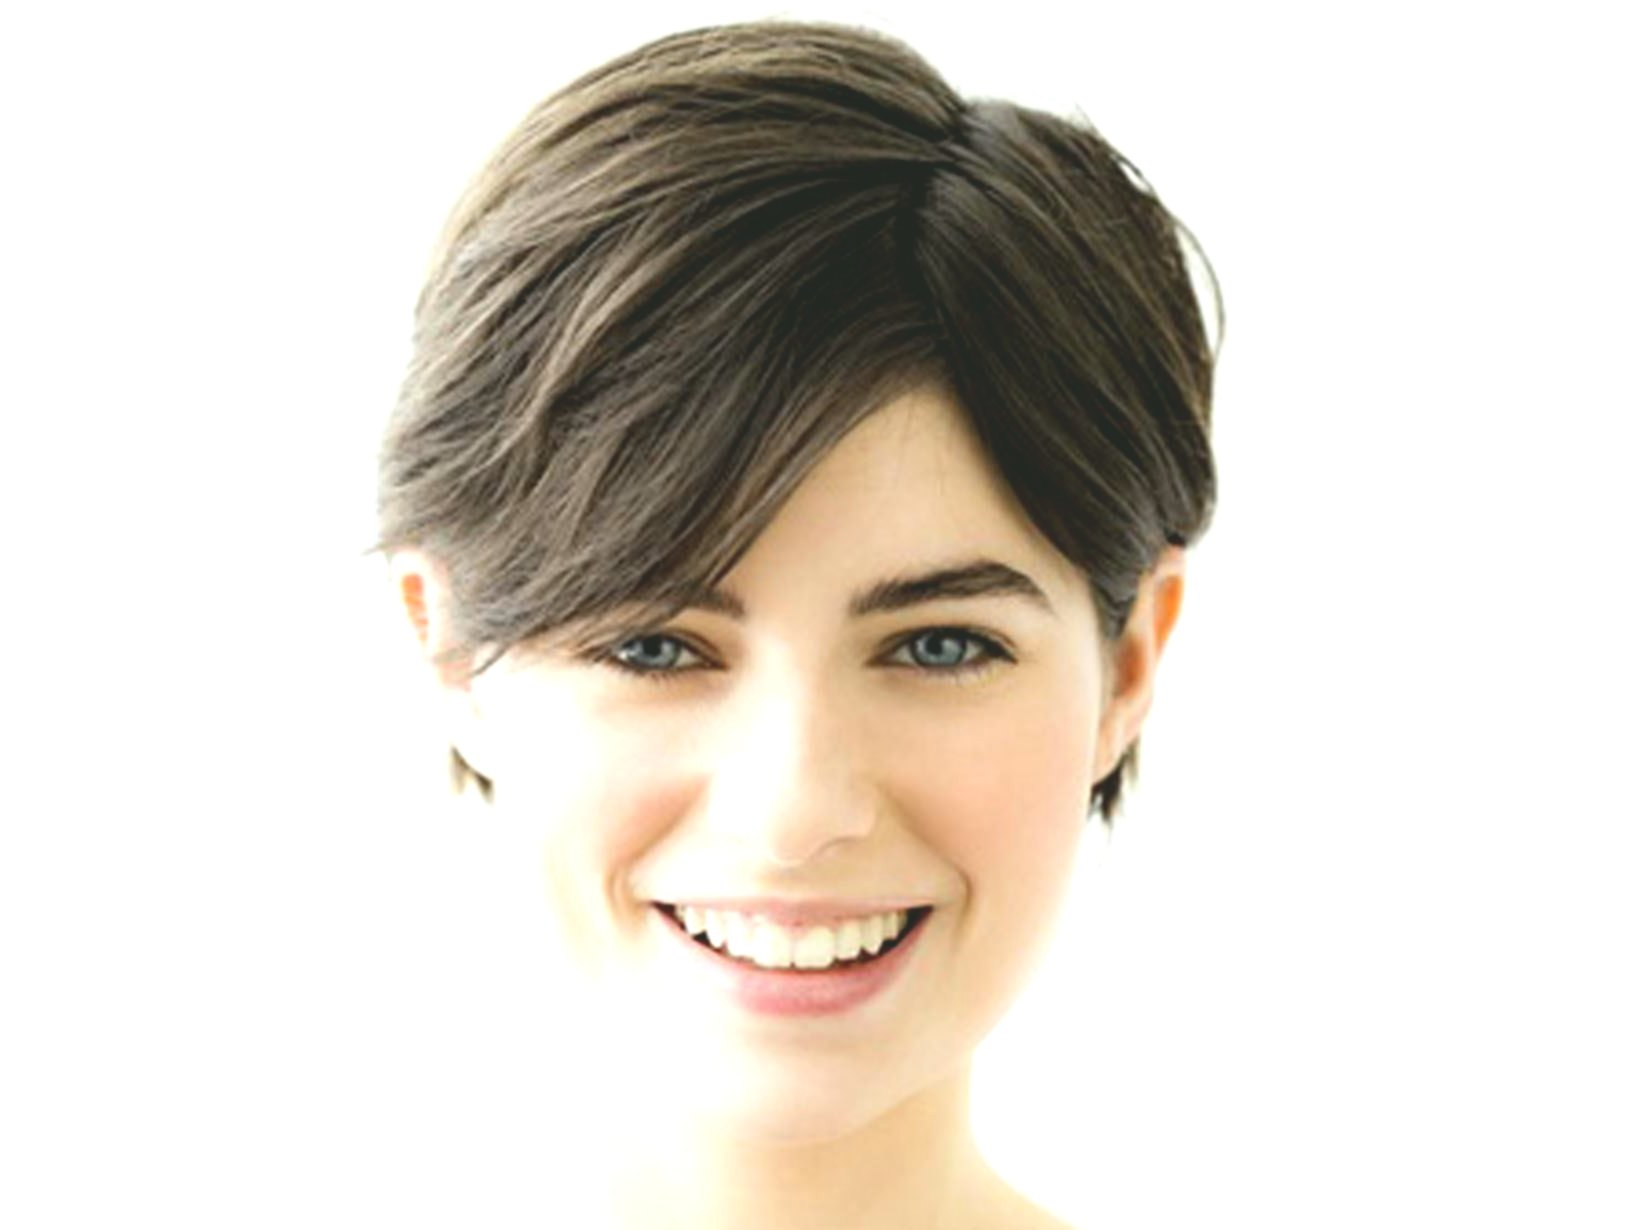 lovely short hairstyles for ladies decoration-Superb Short Hairstyles For Ladies Photography